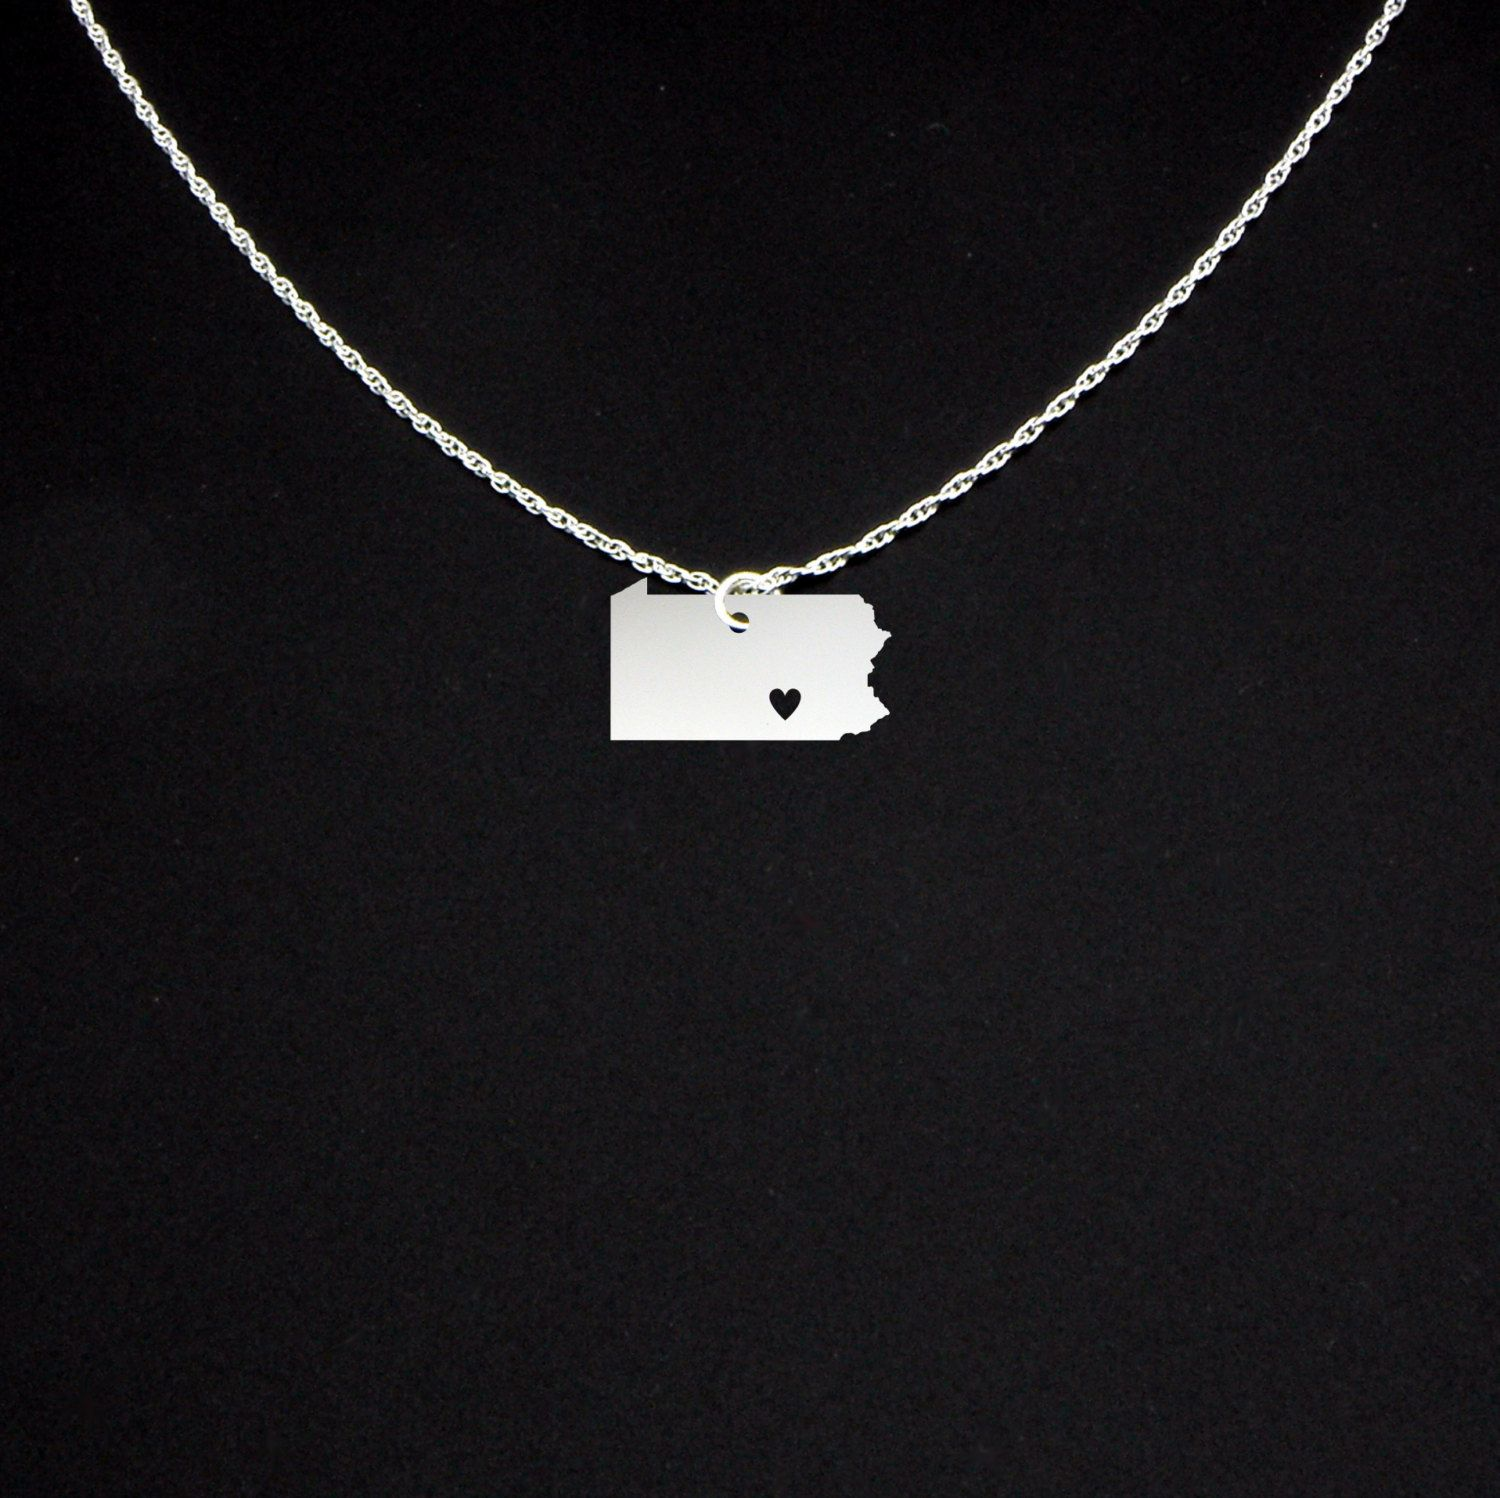 Pennsylvania Necklace - Sterling Silver Love Heart